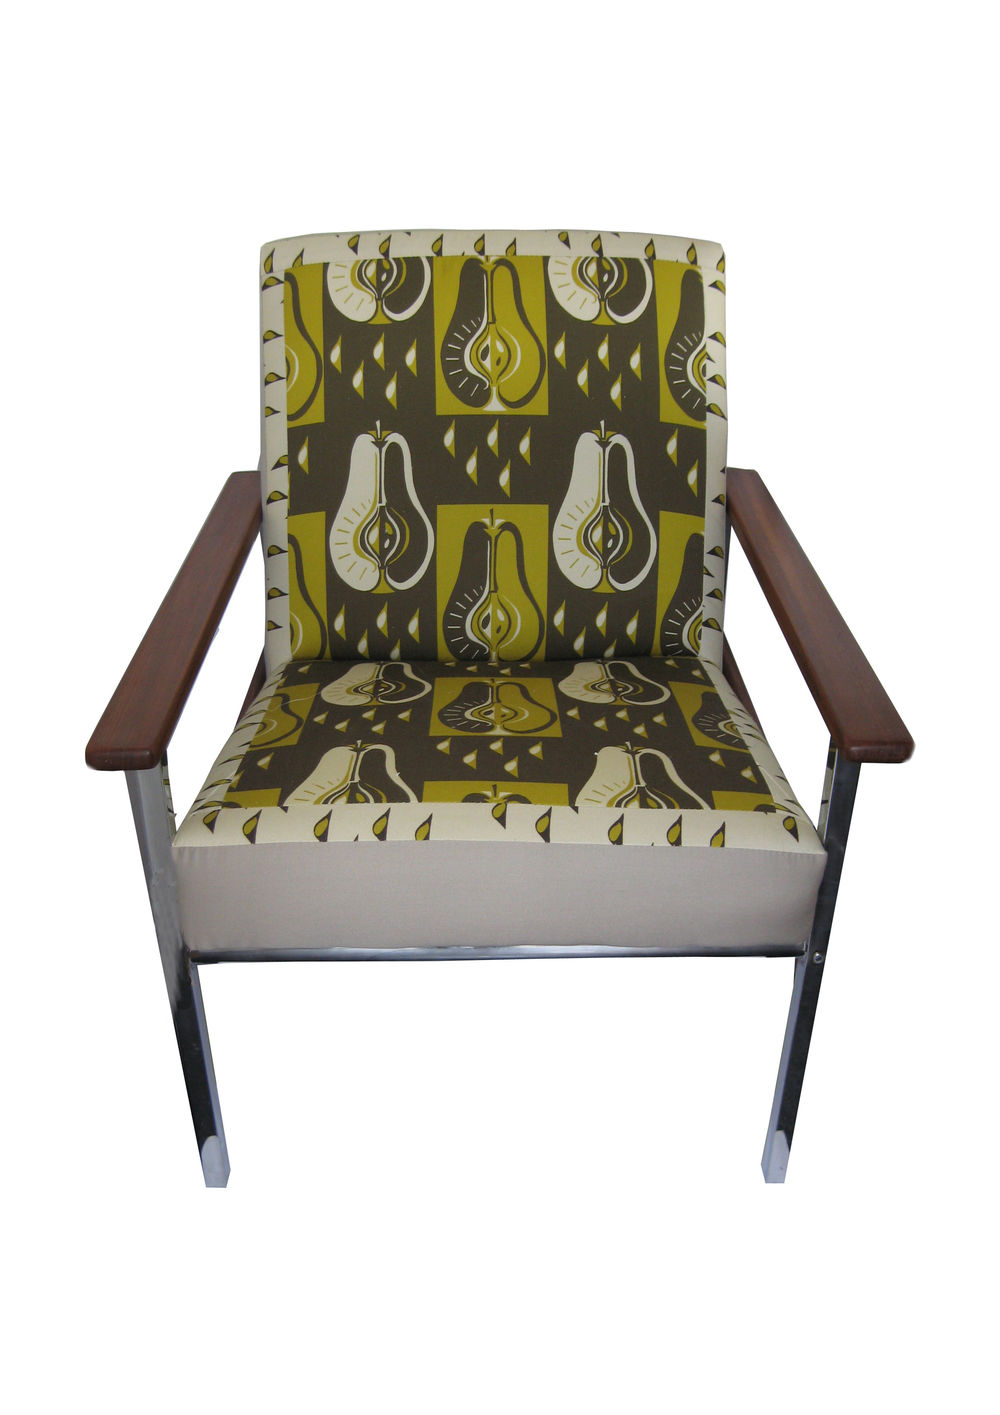 retr chair in pear green fabric.jpg